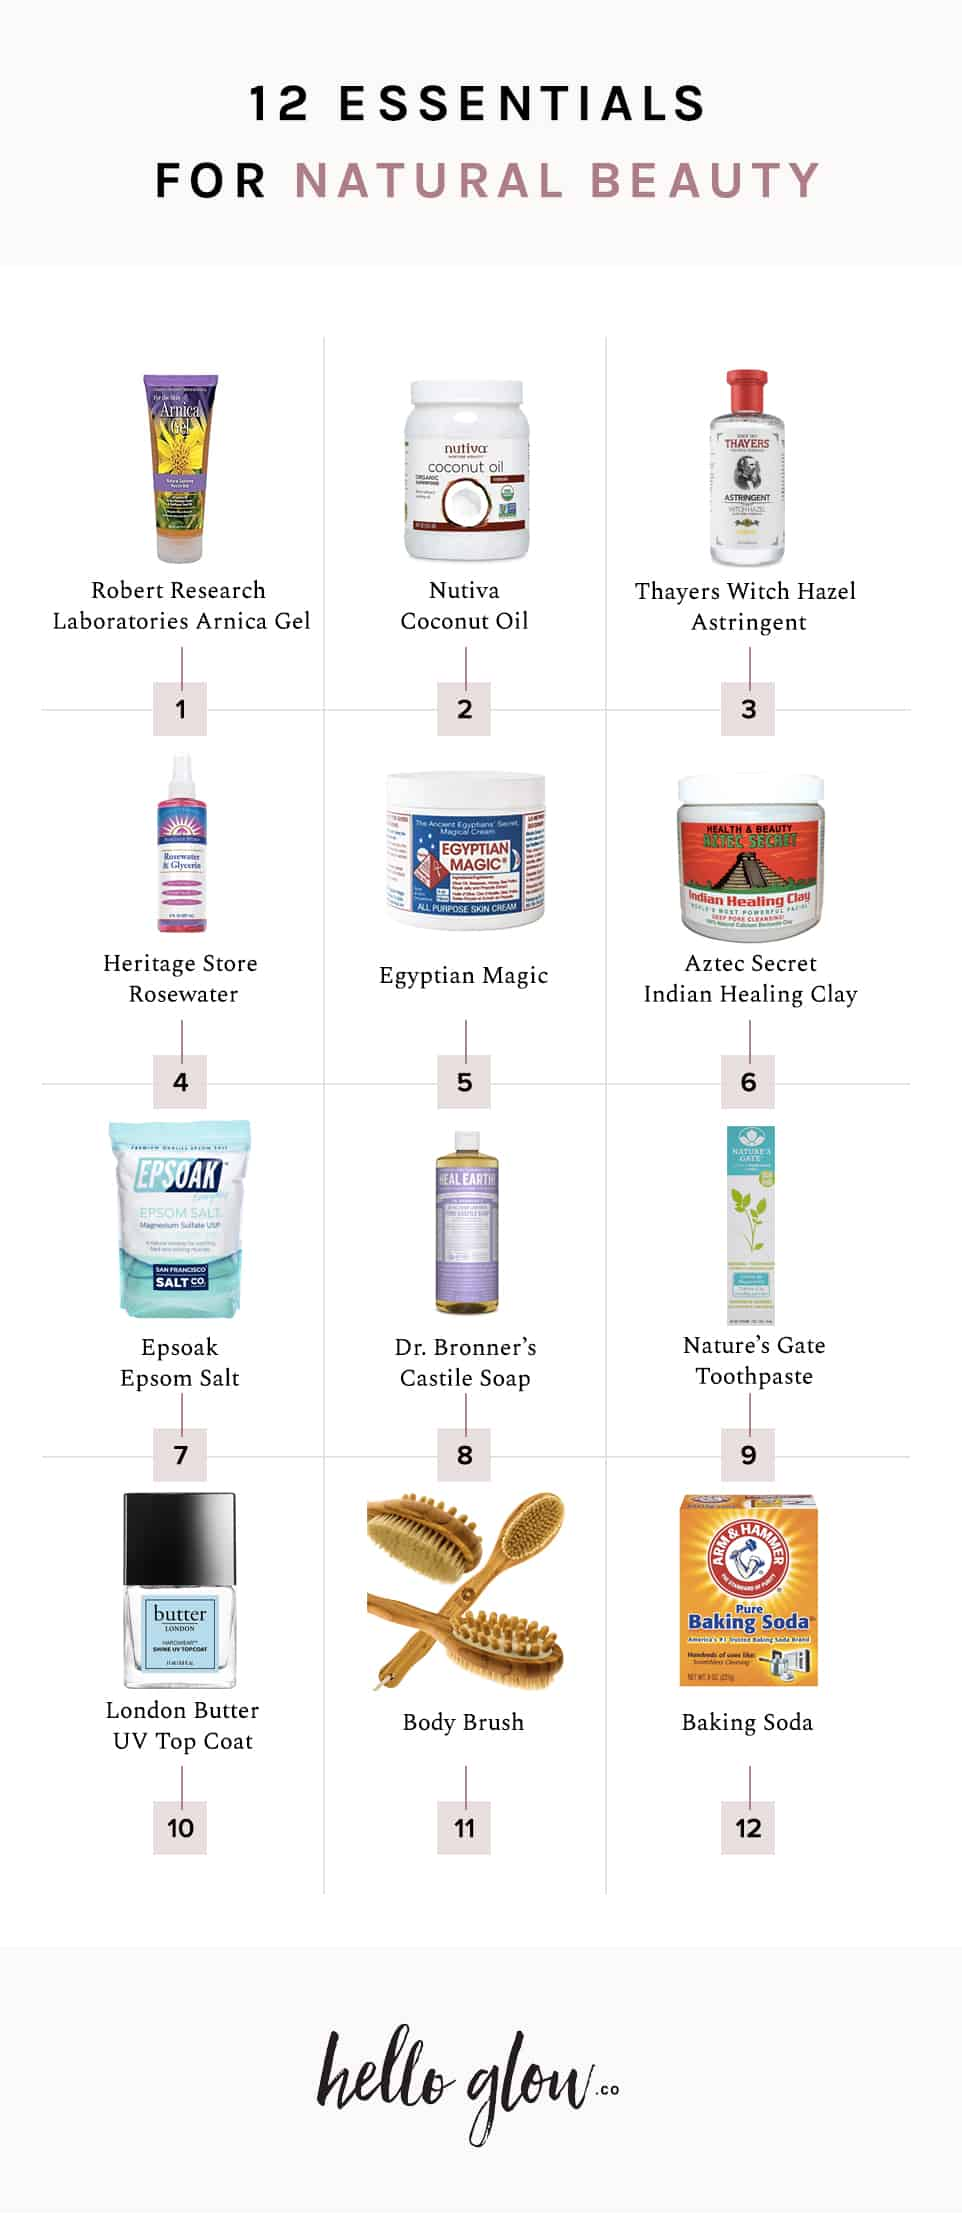 12 Essentials for Natural Beauty - HelloGlow.co